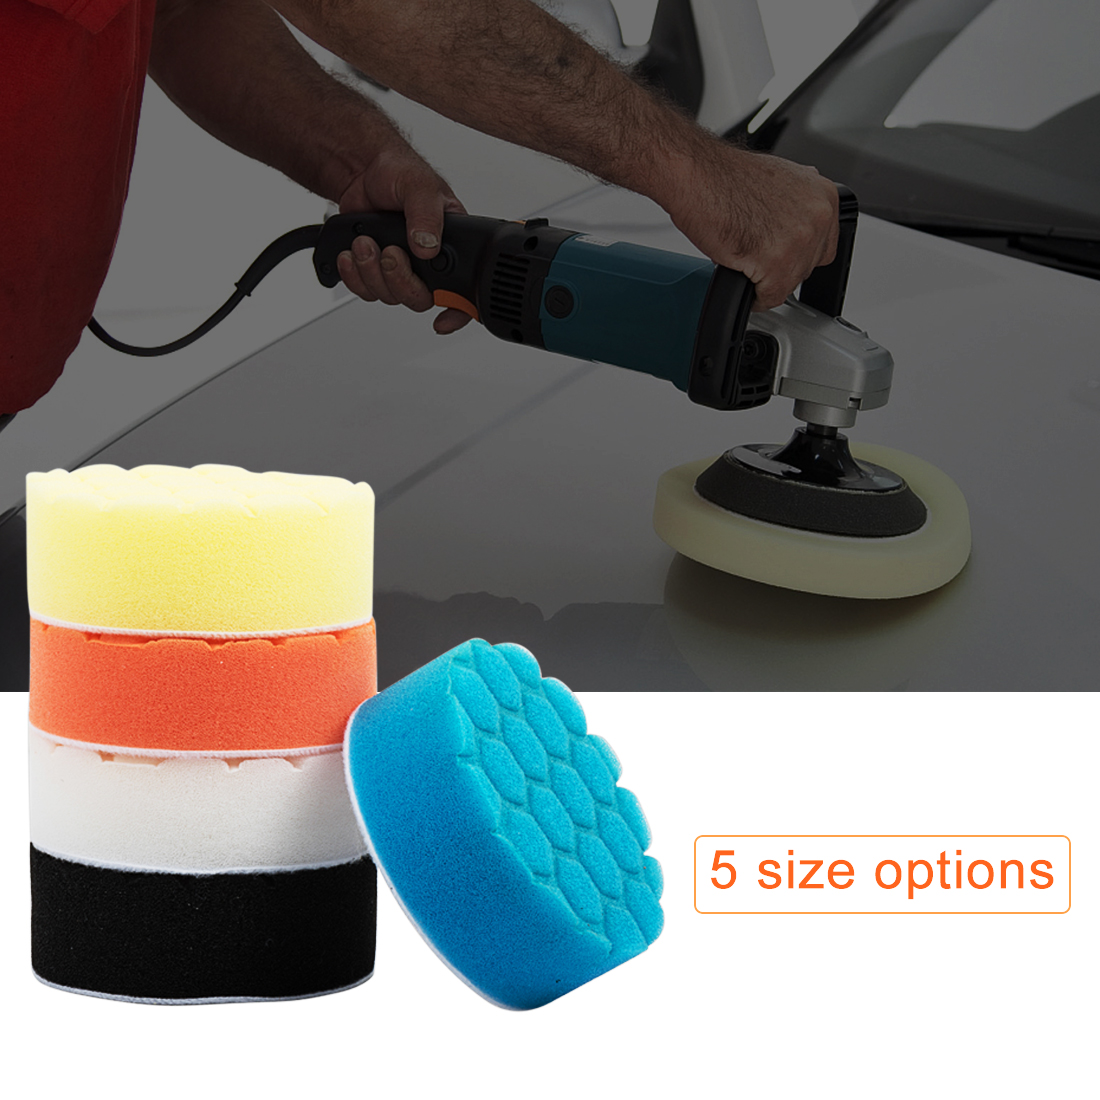 Hot Sale 5pcs 3/4/5/6/7 Inch Buffing Sponge Polishing Pad Hand Tool Kit For Car Polisher Wax